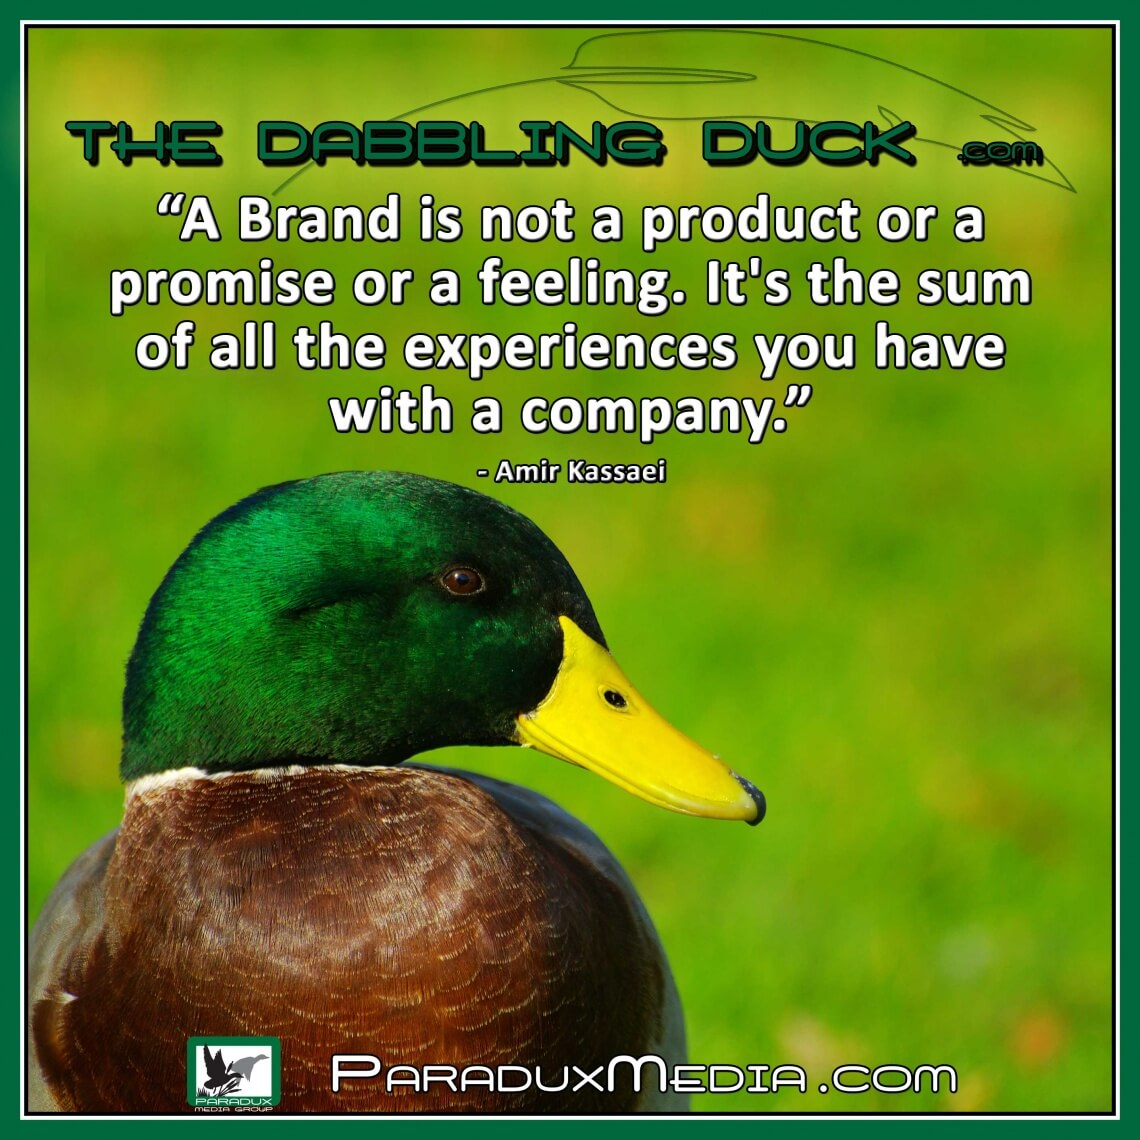 TheDabblingDuck-A-Brand-is-not-a-product-or-a-promise-or-a-feeling.-It's-the-sum-of-all-the-experiences-you-have-with-a-company